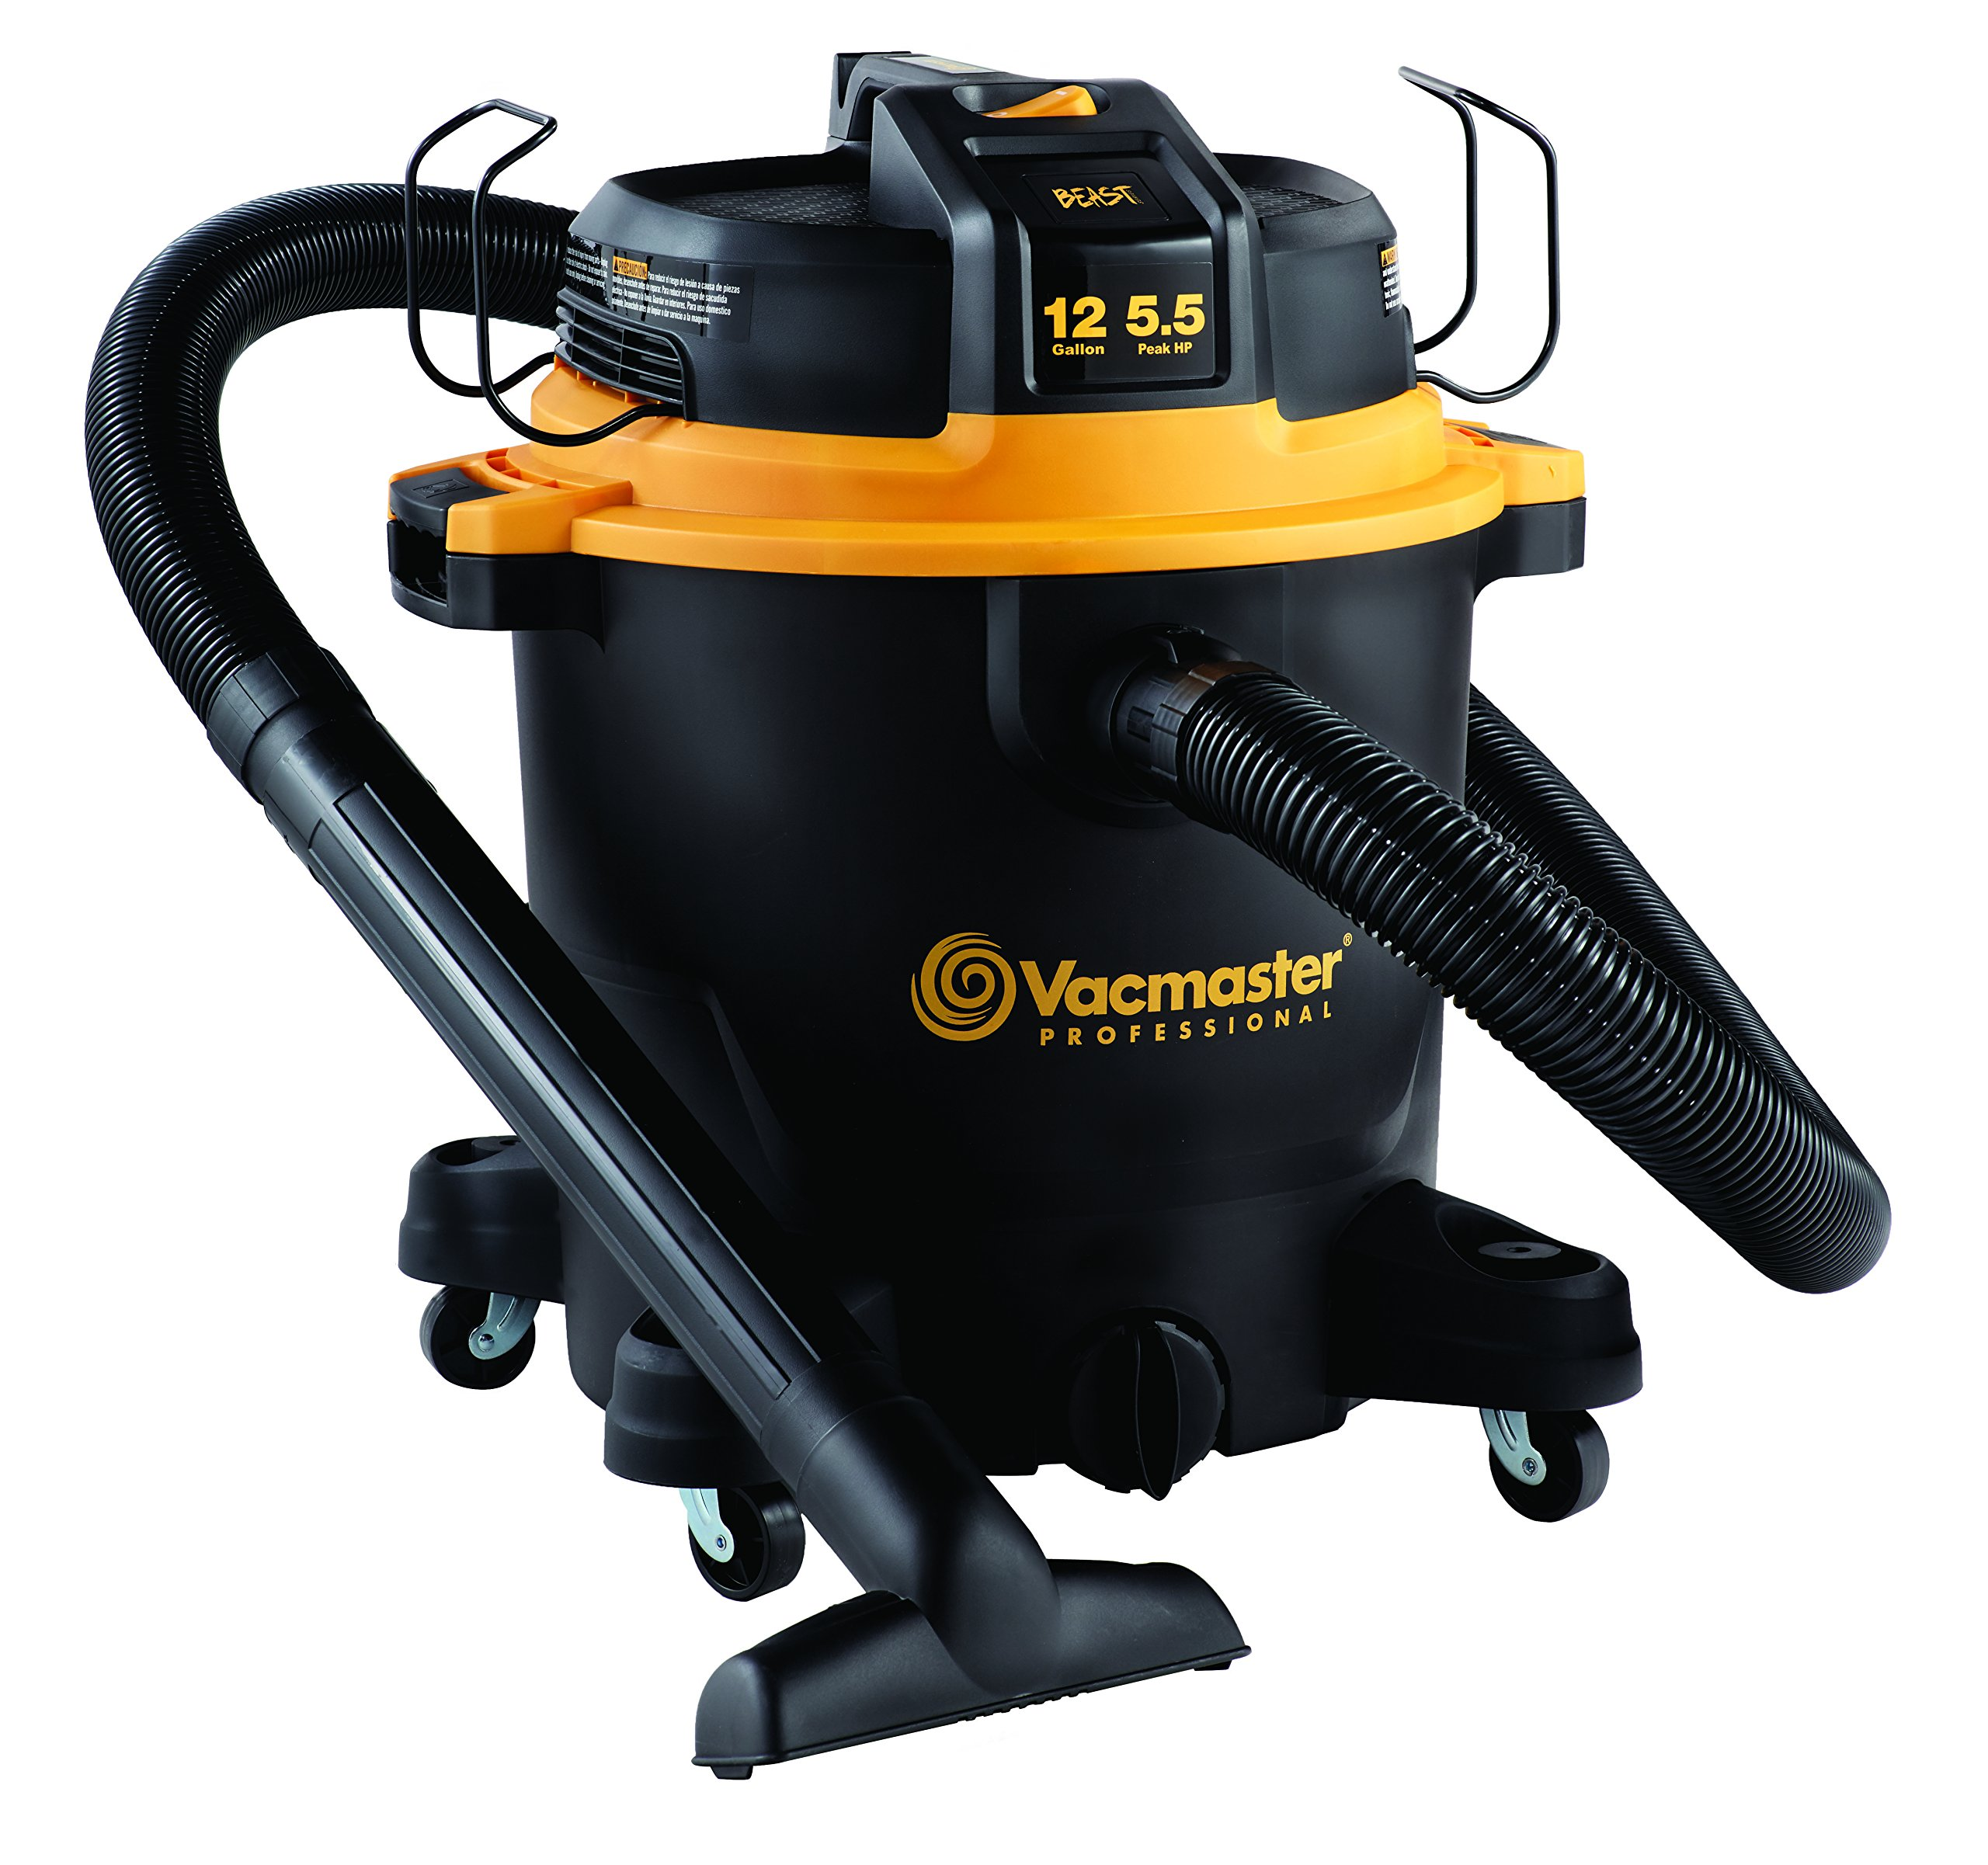 Vacmaster Professional - Professional Wet/Dry Vac, 12 Gallon, Beast Series, 5.5 HP 2-1/2'' Hose (VJH1211PF0201) by VACMASTER